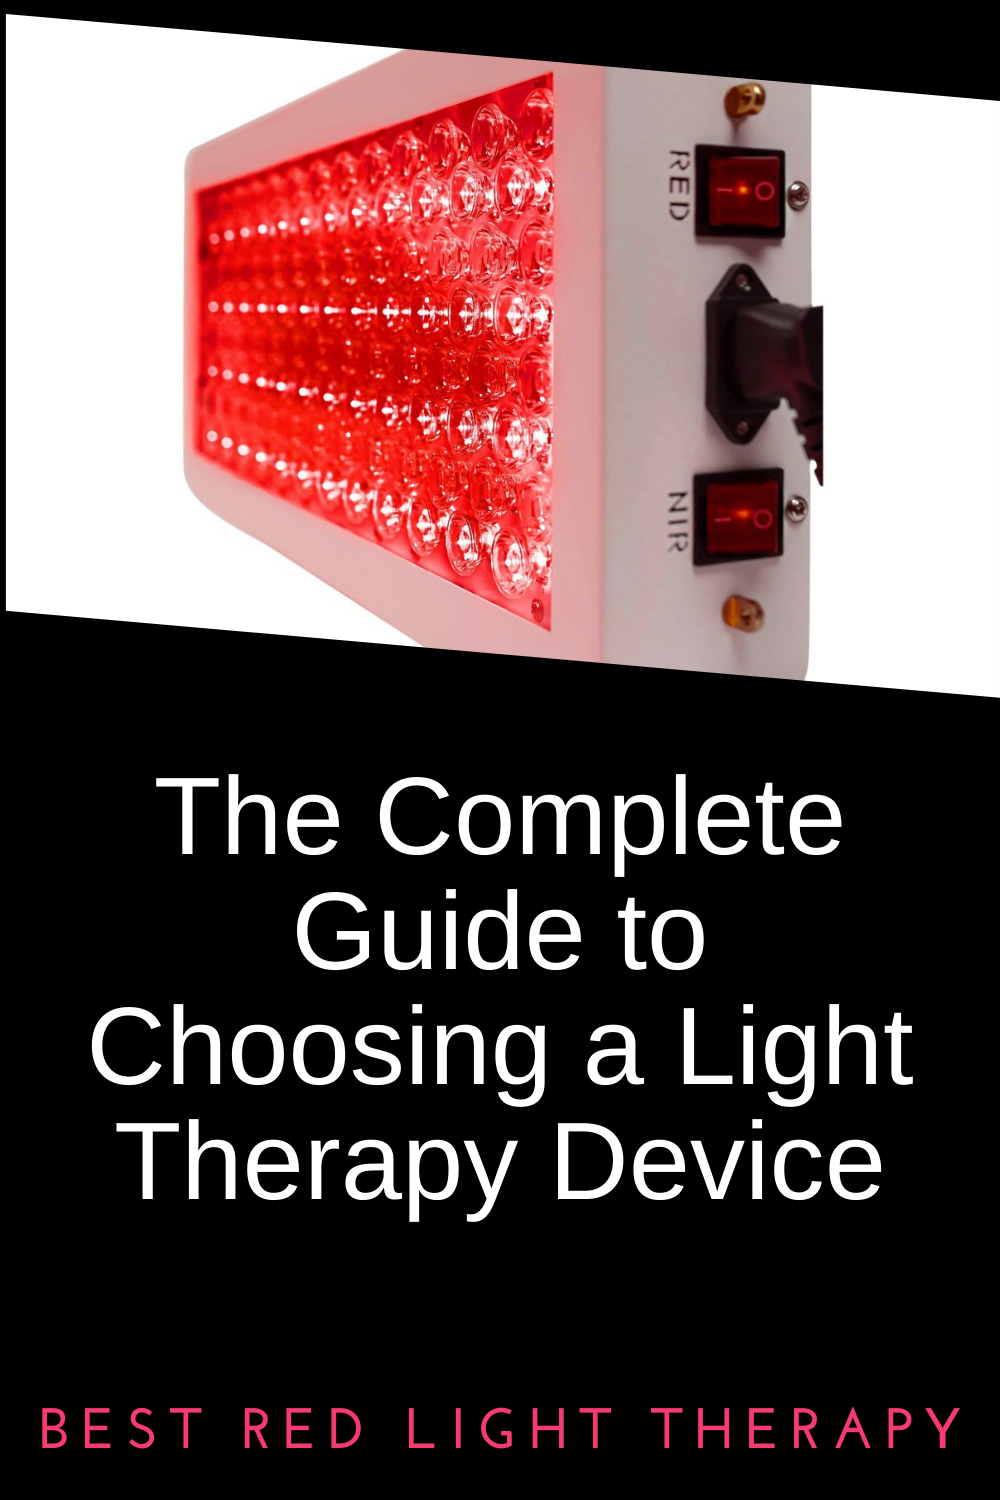 Complete guide to red light therapy device